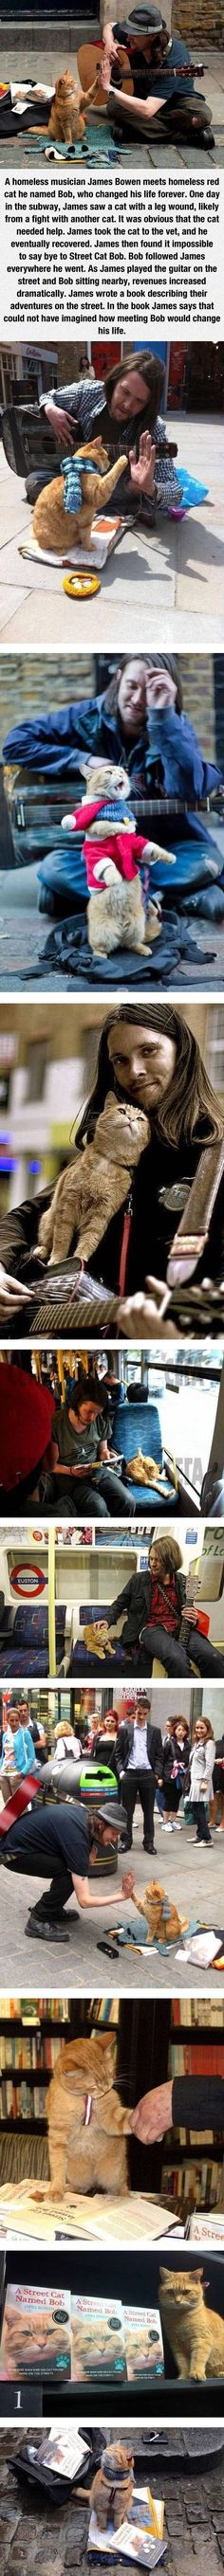 A Homeless Musician And His Cat cat story musician cool story